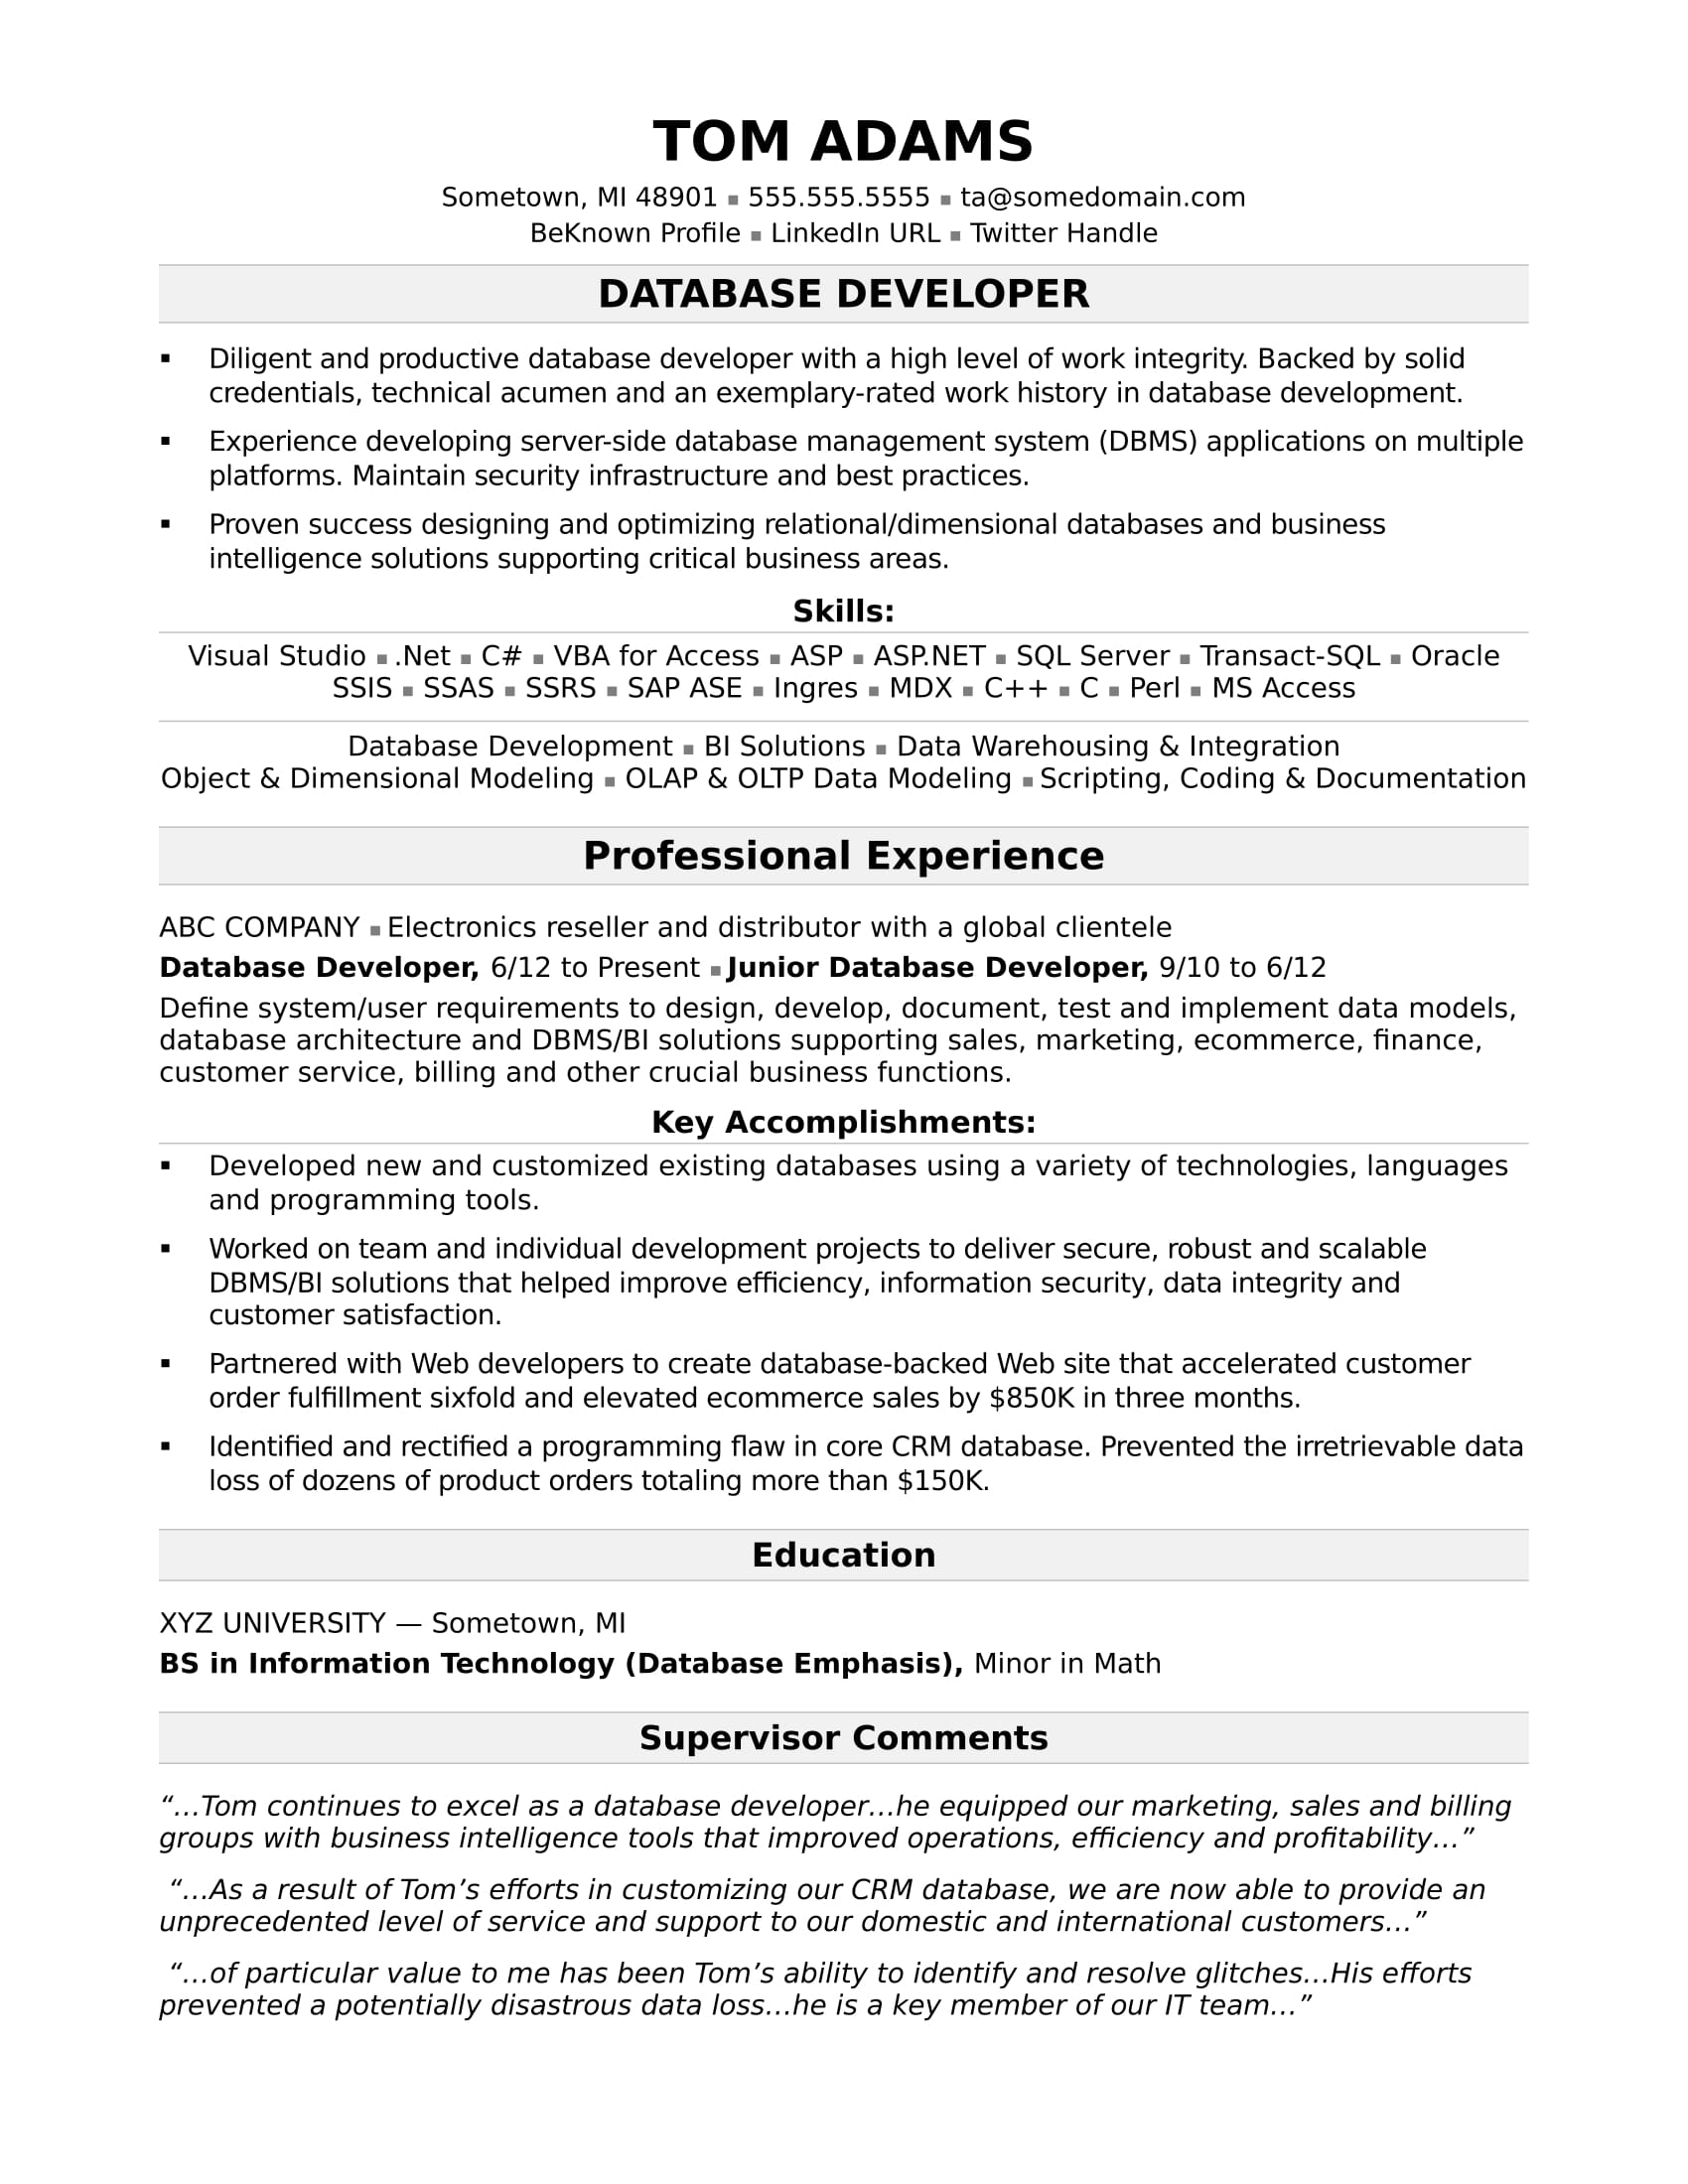 Sample Resume For A Midlevel IT Developer  Developer Resume Template